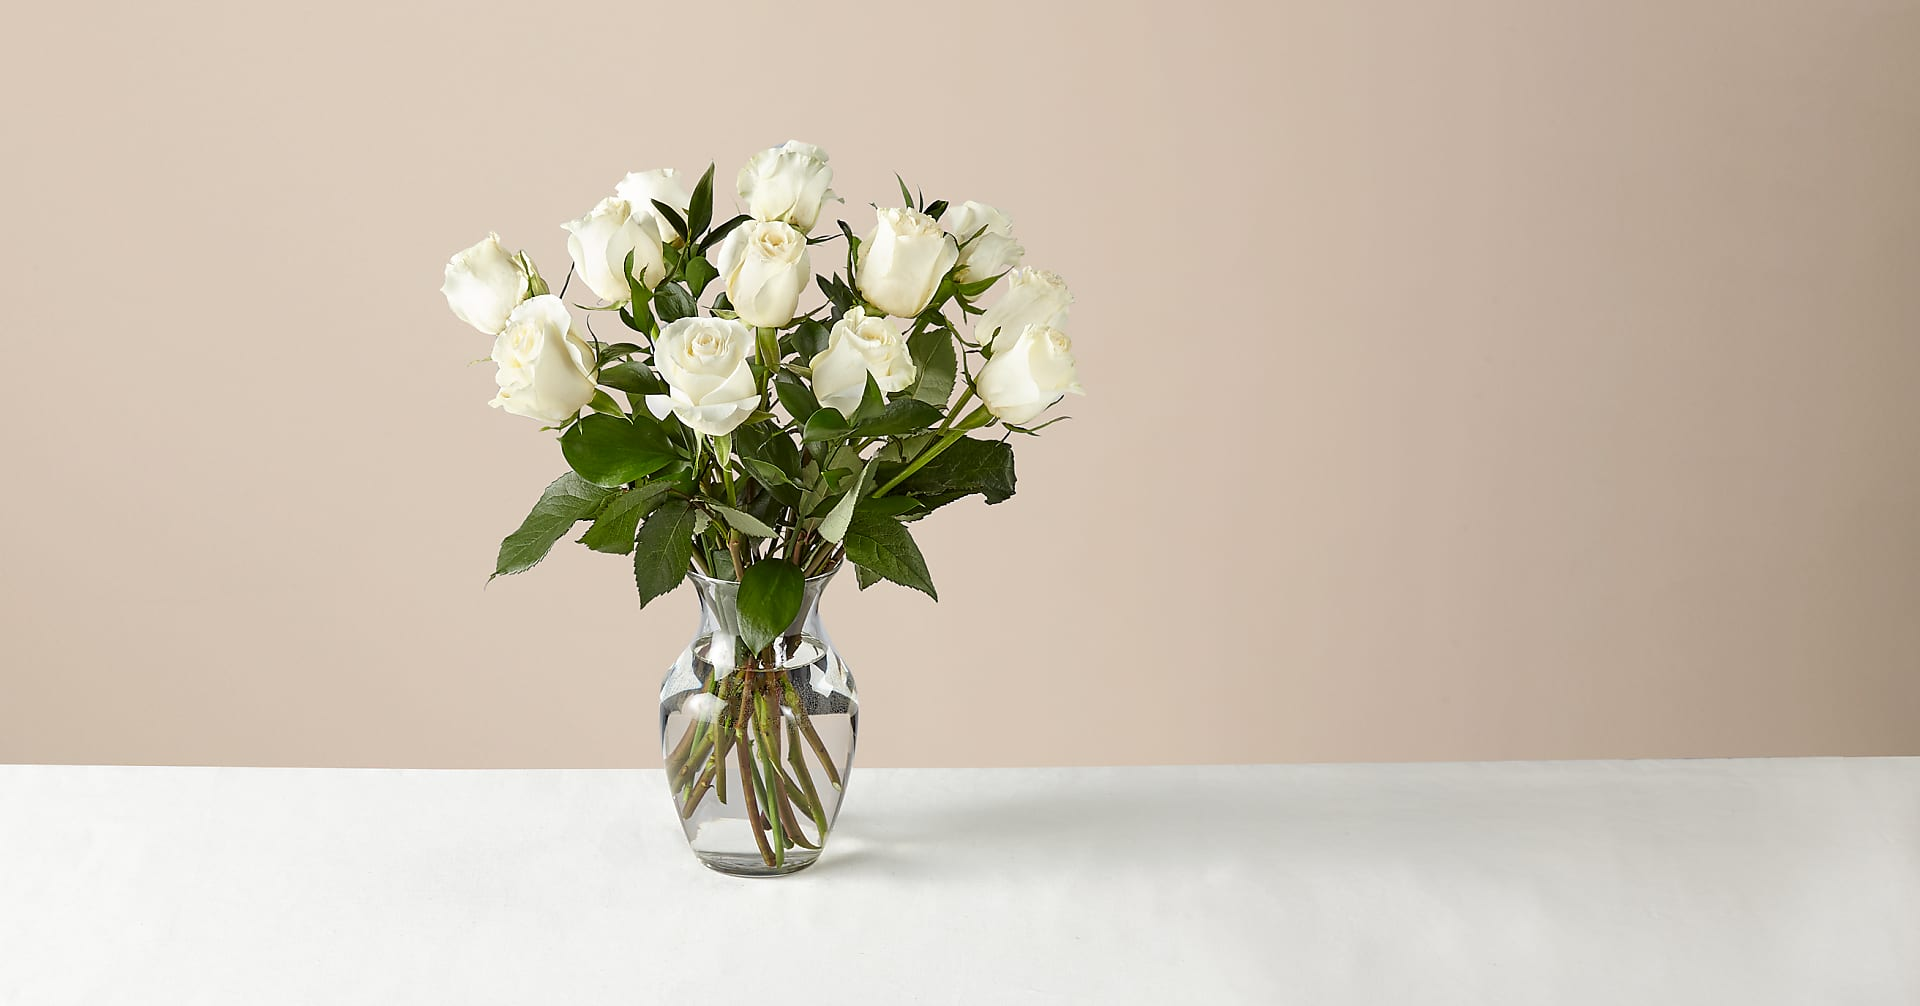 Moonlight White Rose Bouquet - Image 1 Of 2